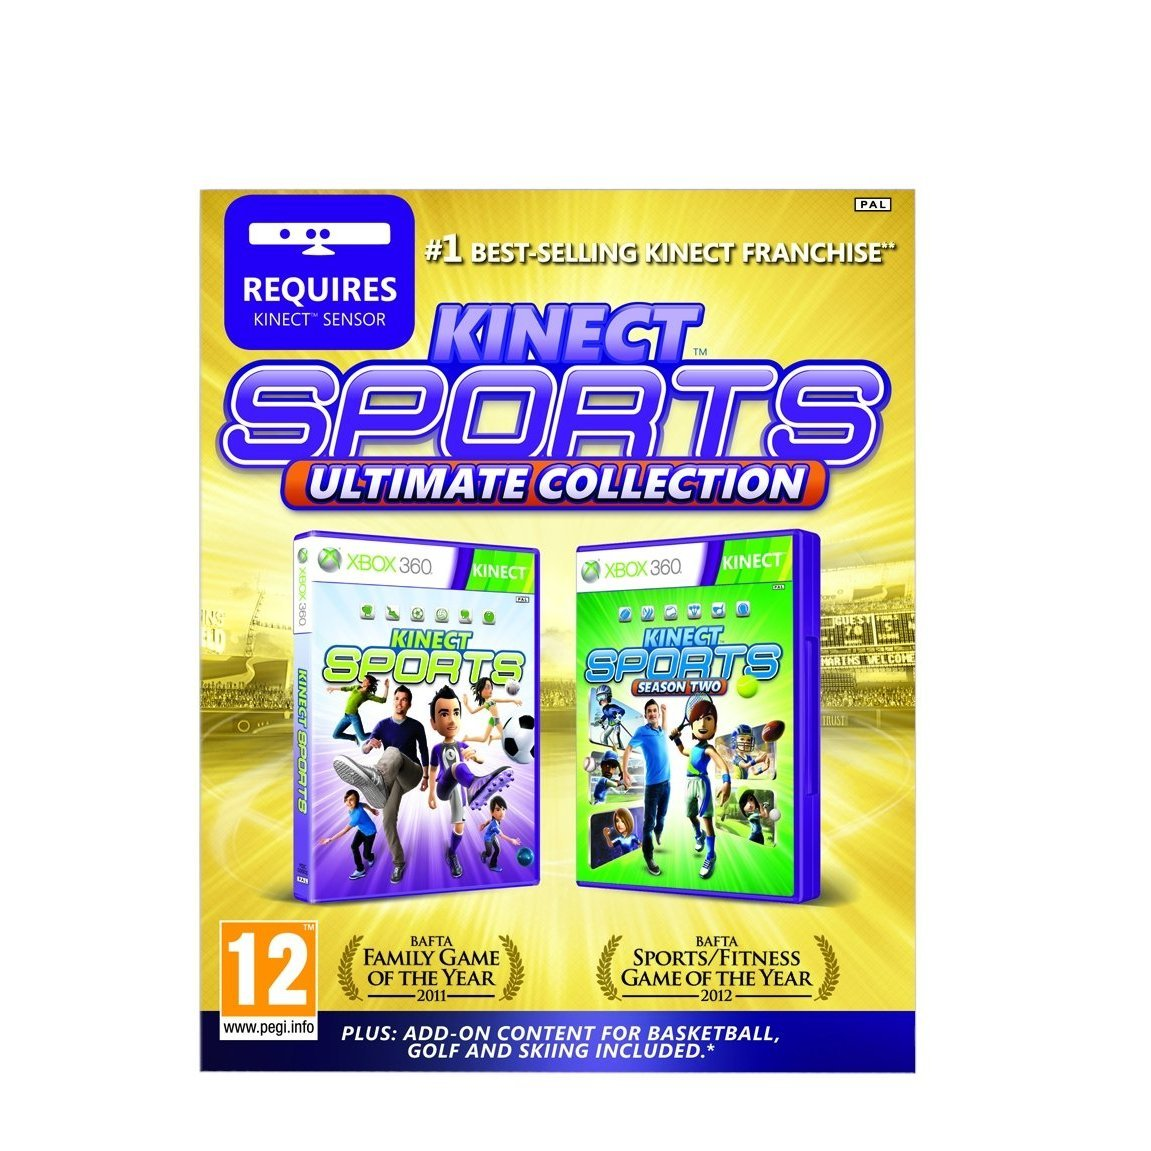 Kinect Sports Ultimate Collection Xbox 360 Region Free Switch Gear Club Unlimited English Pal Games Video